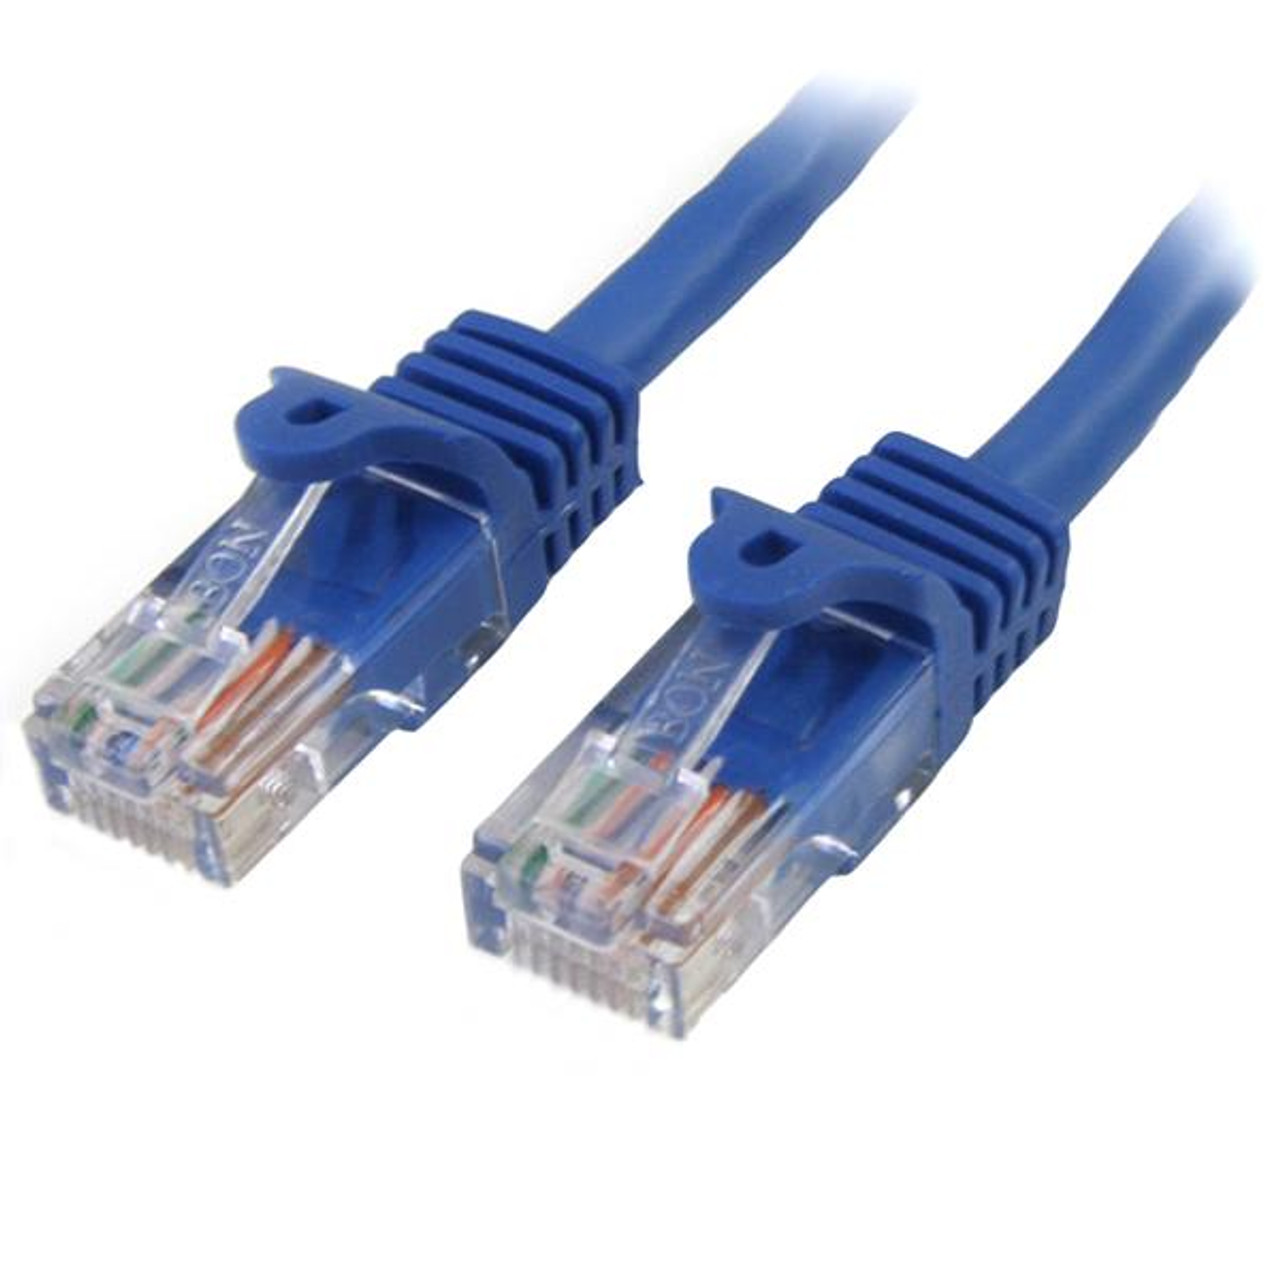 Image for StarTech 2m Cat 5e Blue Snagless Ethernet Patch Cable CX Computer Superstore